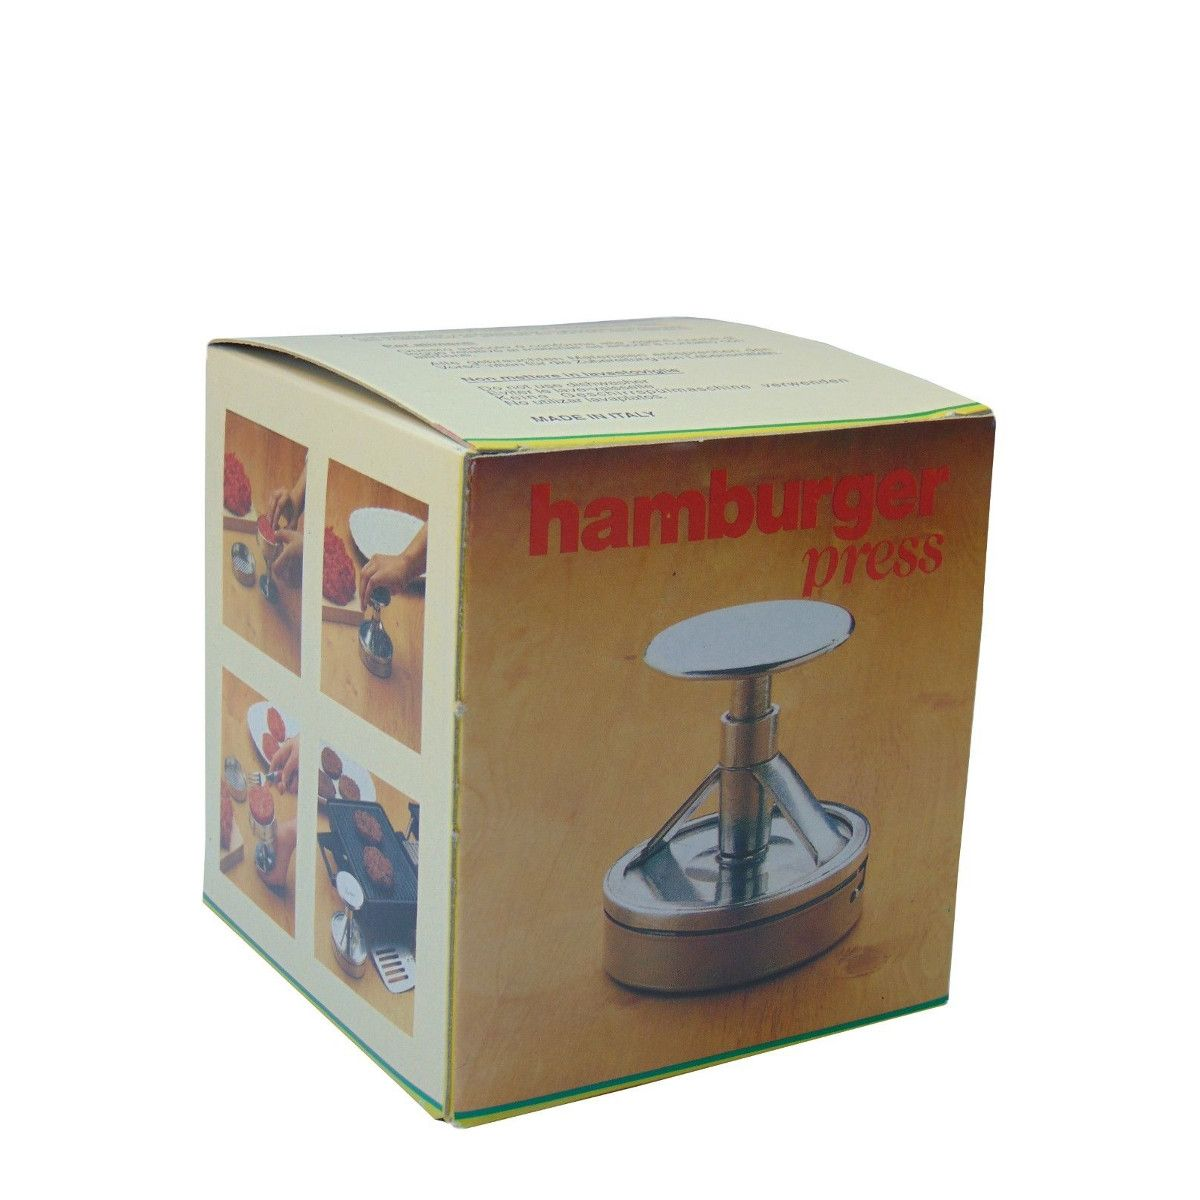 Kitchen Accessory Shop: Italian Cooking Store